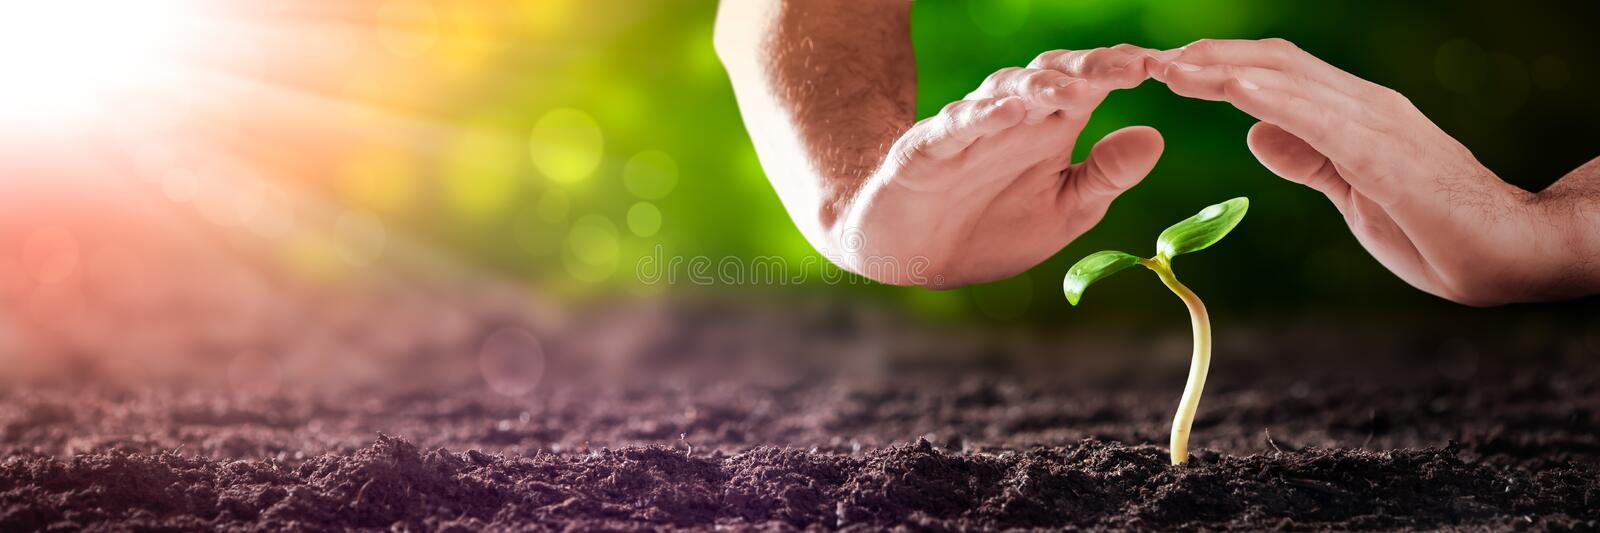 Protecting Hands Over Small Plant stock image